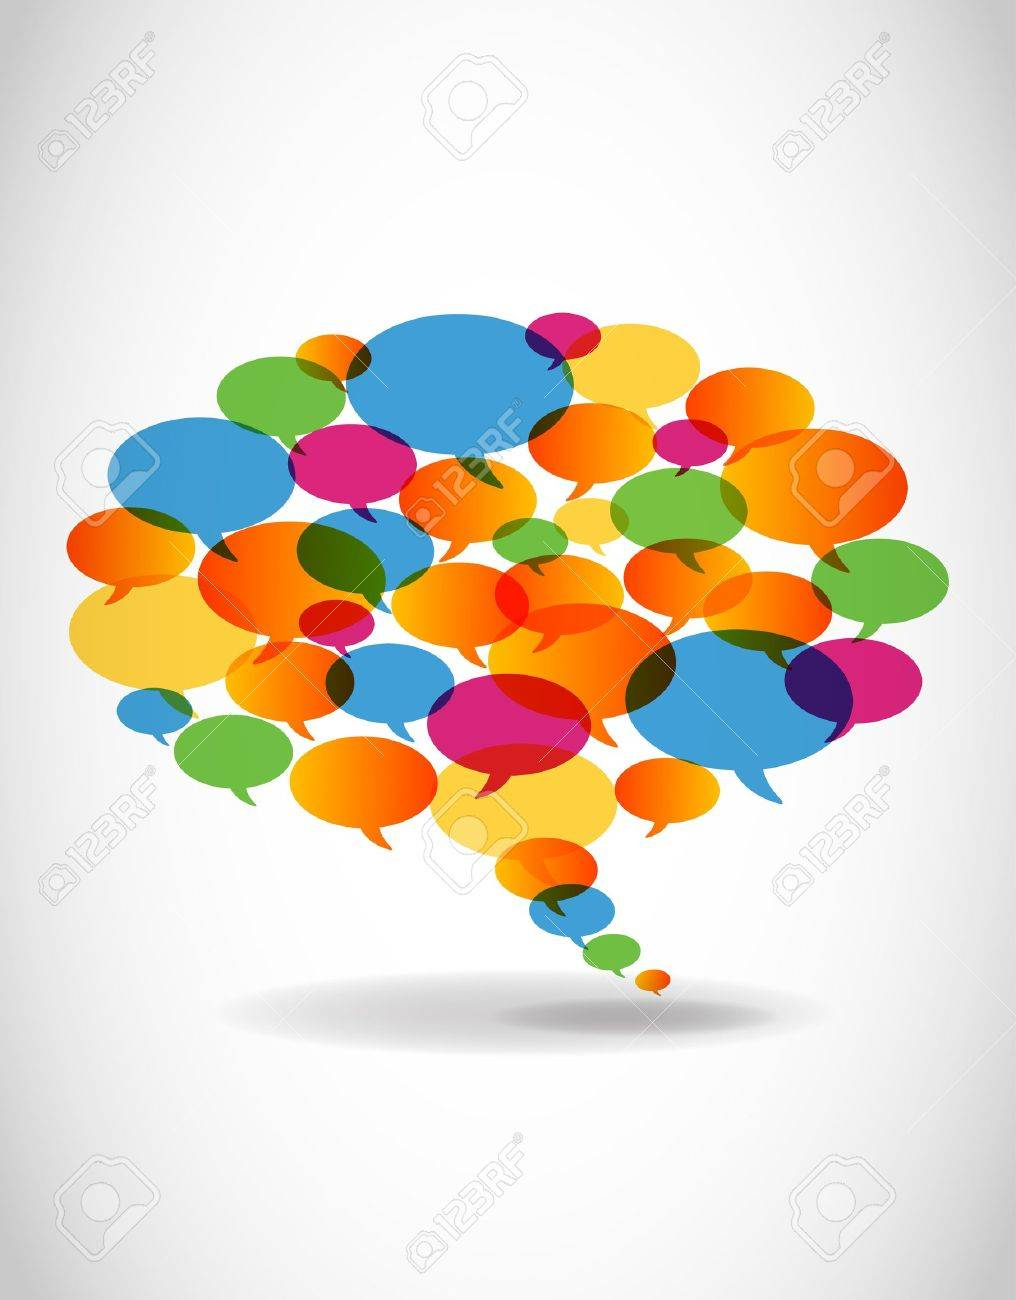 Abstract colorful speech bubble - 11660214